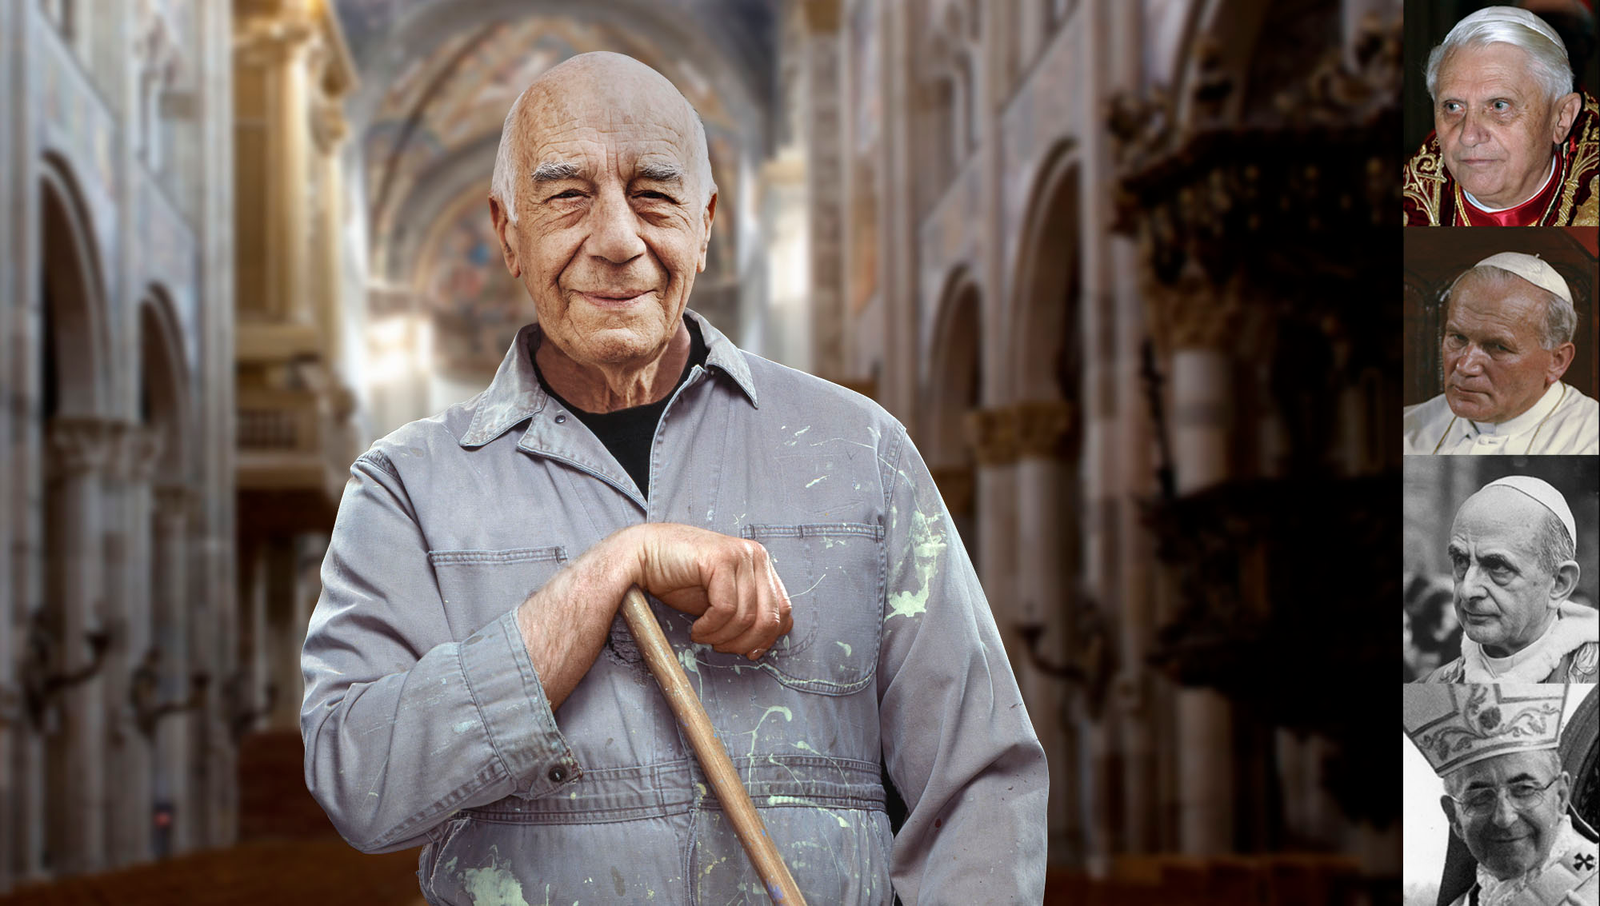 Trusted Sistine Chapel Janitor Convicted Of Sexually Abusing Last 4 Popes